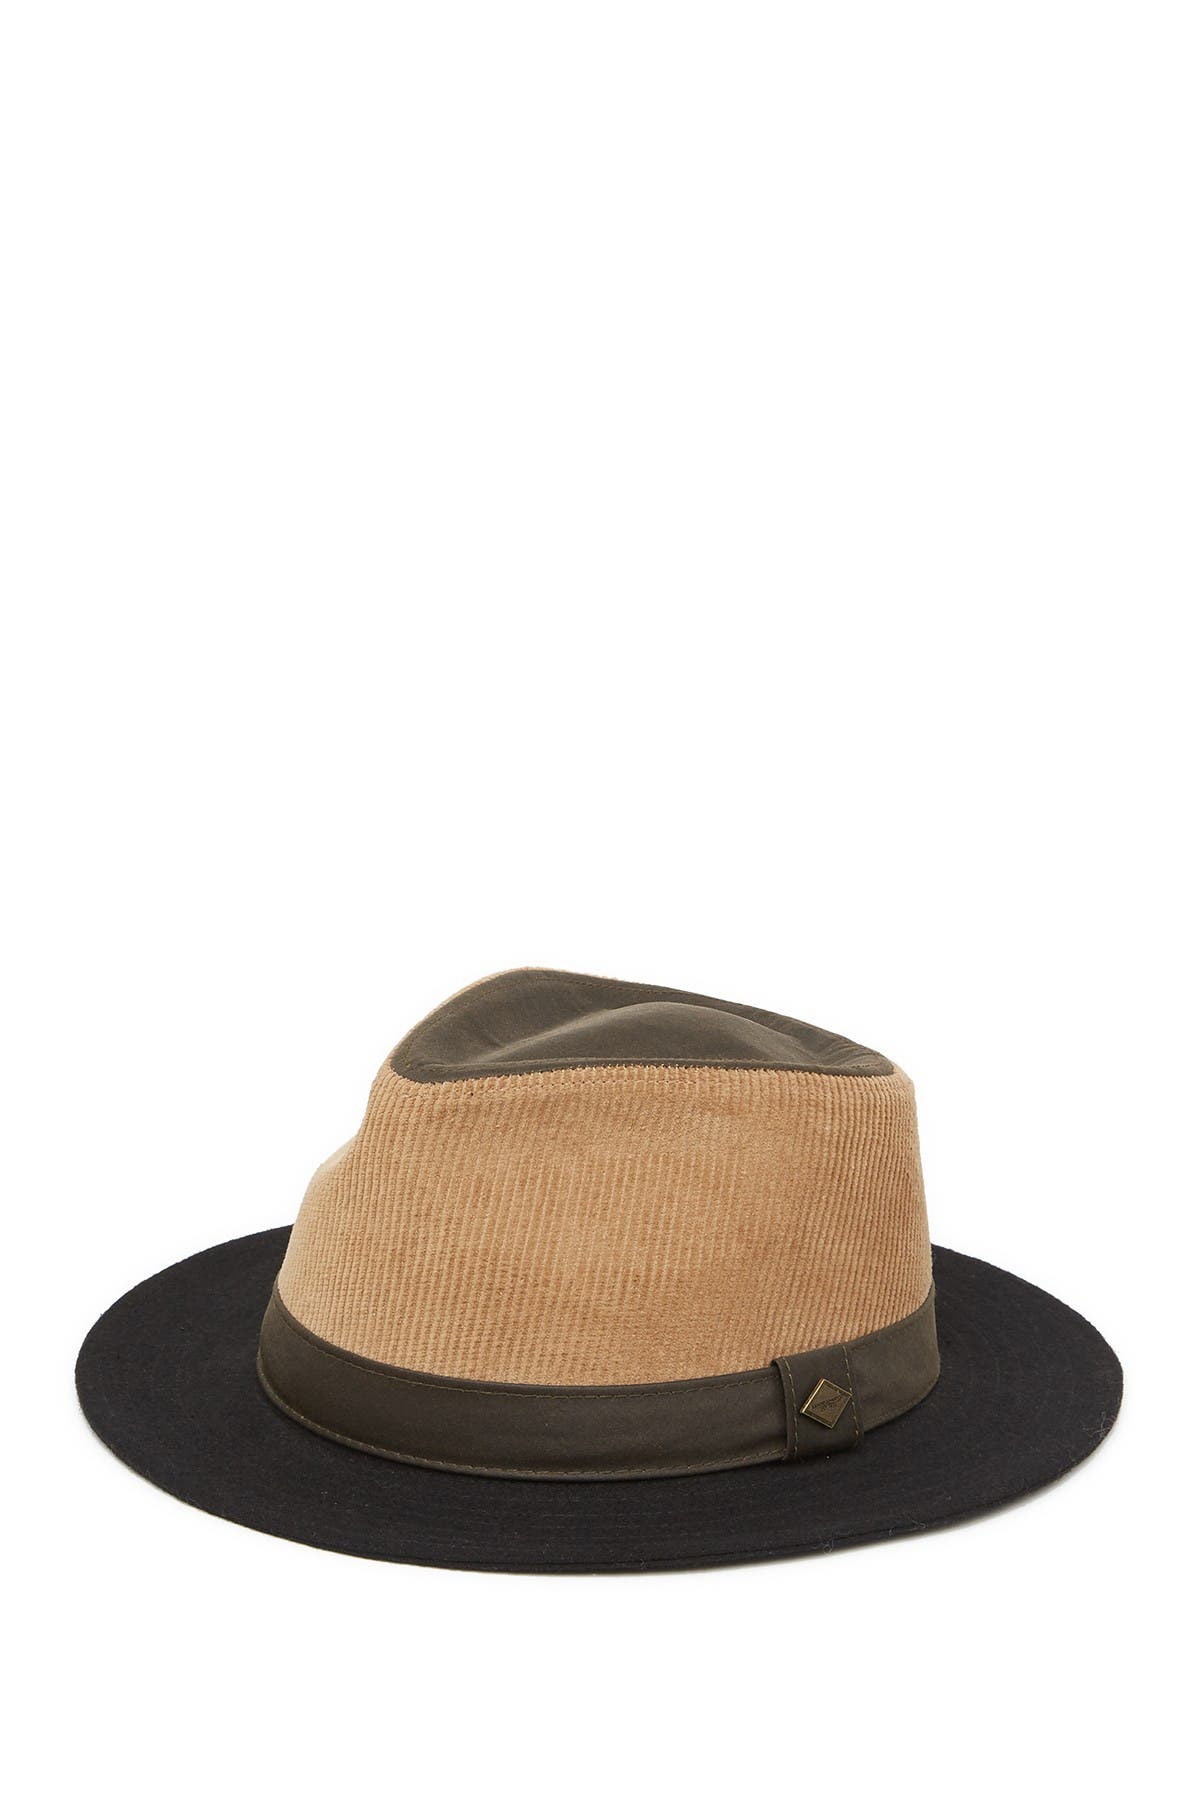 Image of SAN DIEGO HAT Corduroy Dented Hat